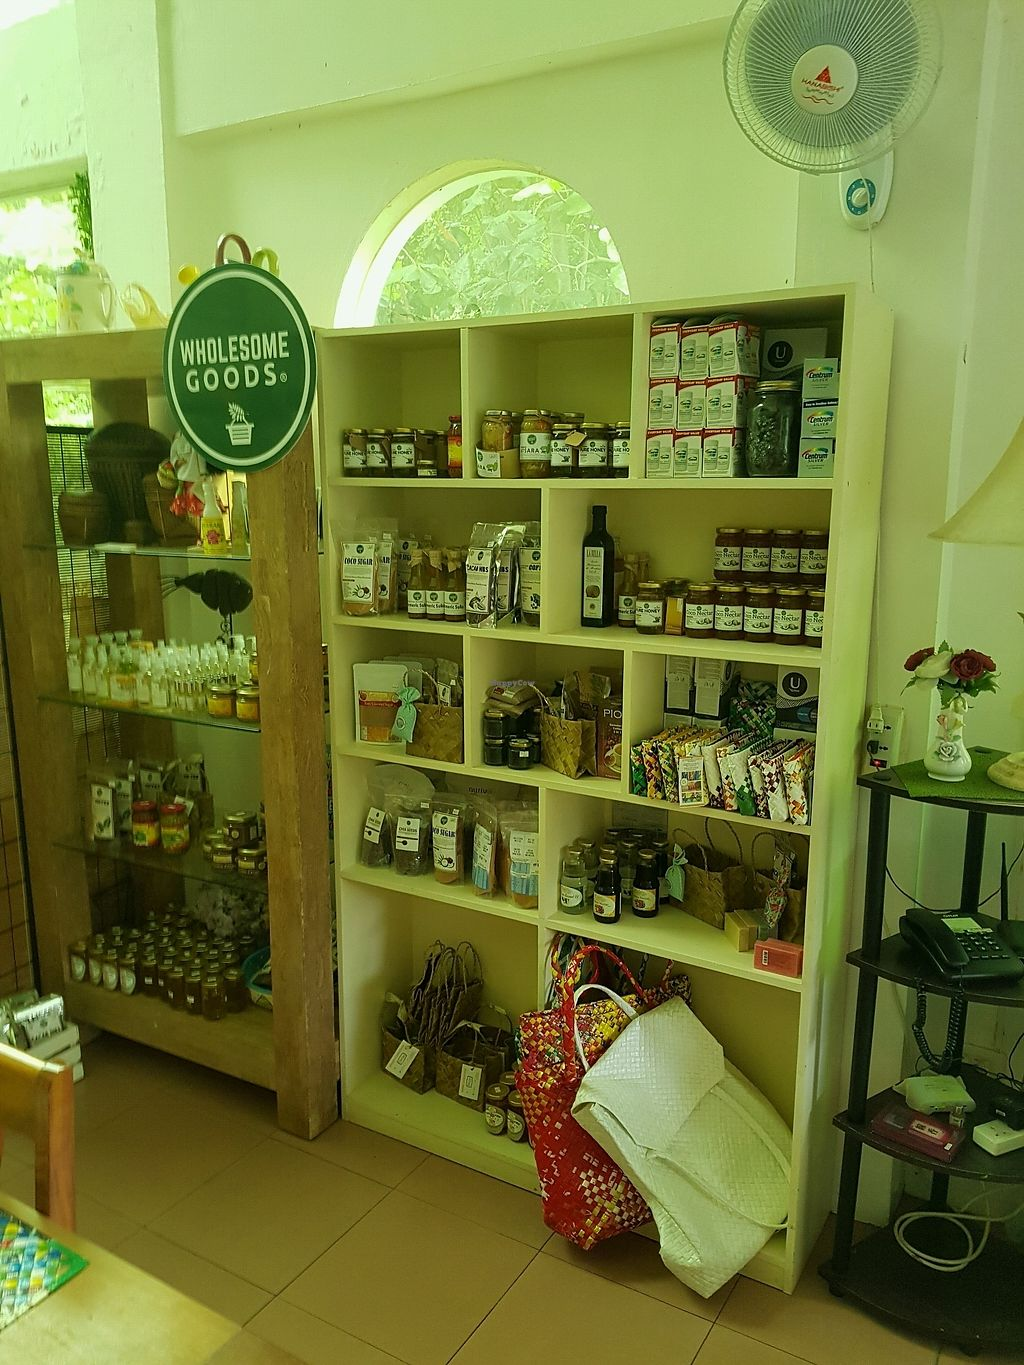 """Photo of The Detox Bar  by <a href=""""/members/profile/LuckyParadise"""">LuckyParadise</a> <br/>some interesting products <br/> January 4, 2018  - <a href='/contact/abuse/image/98280/342843'>Report</a>"""